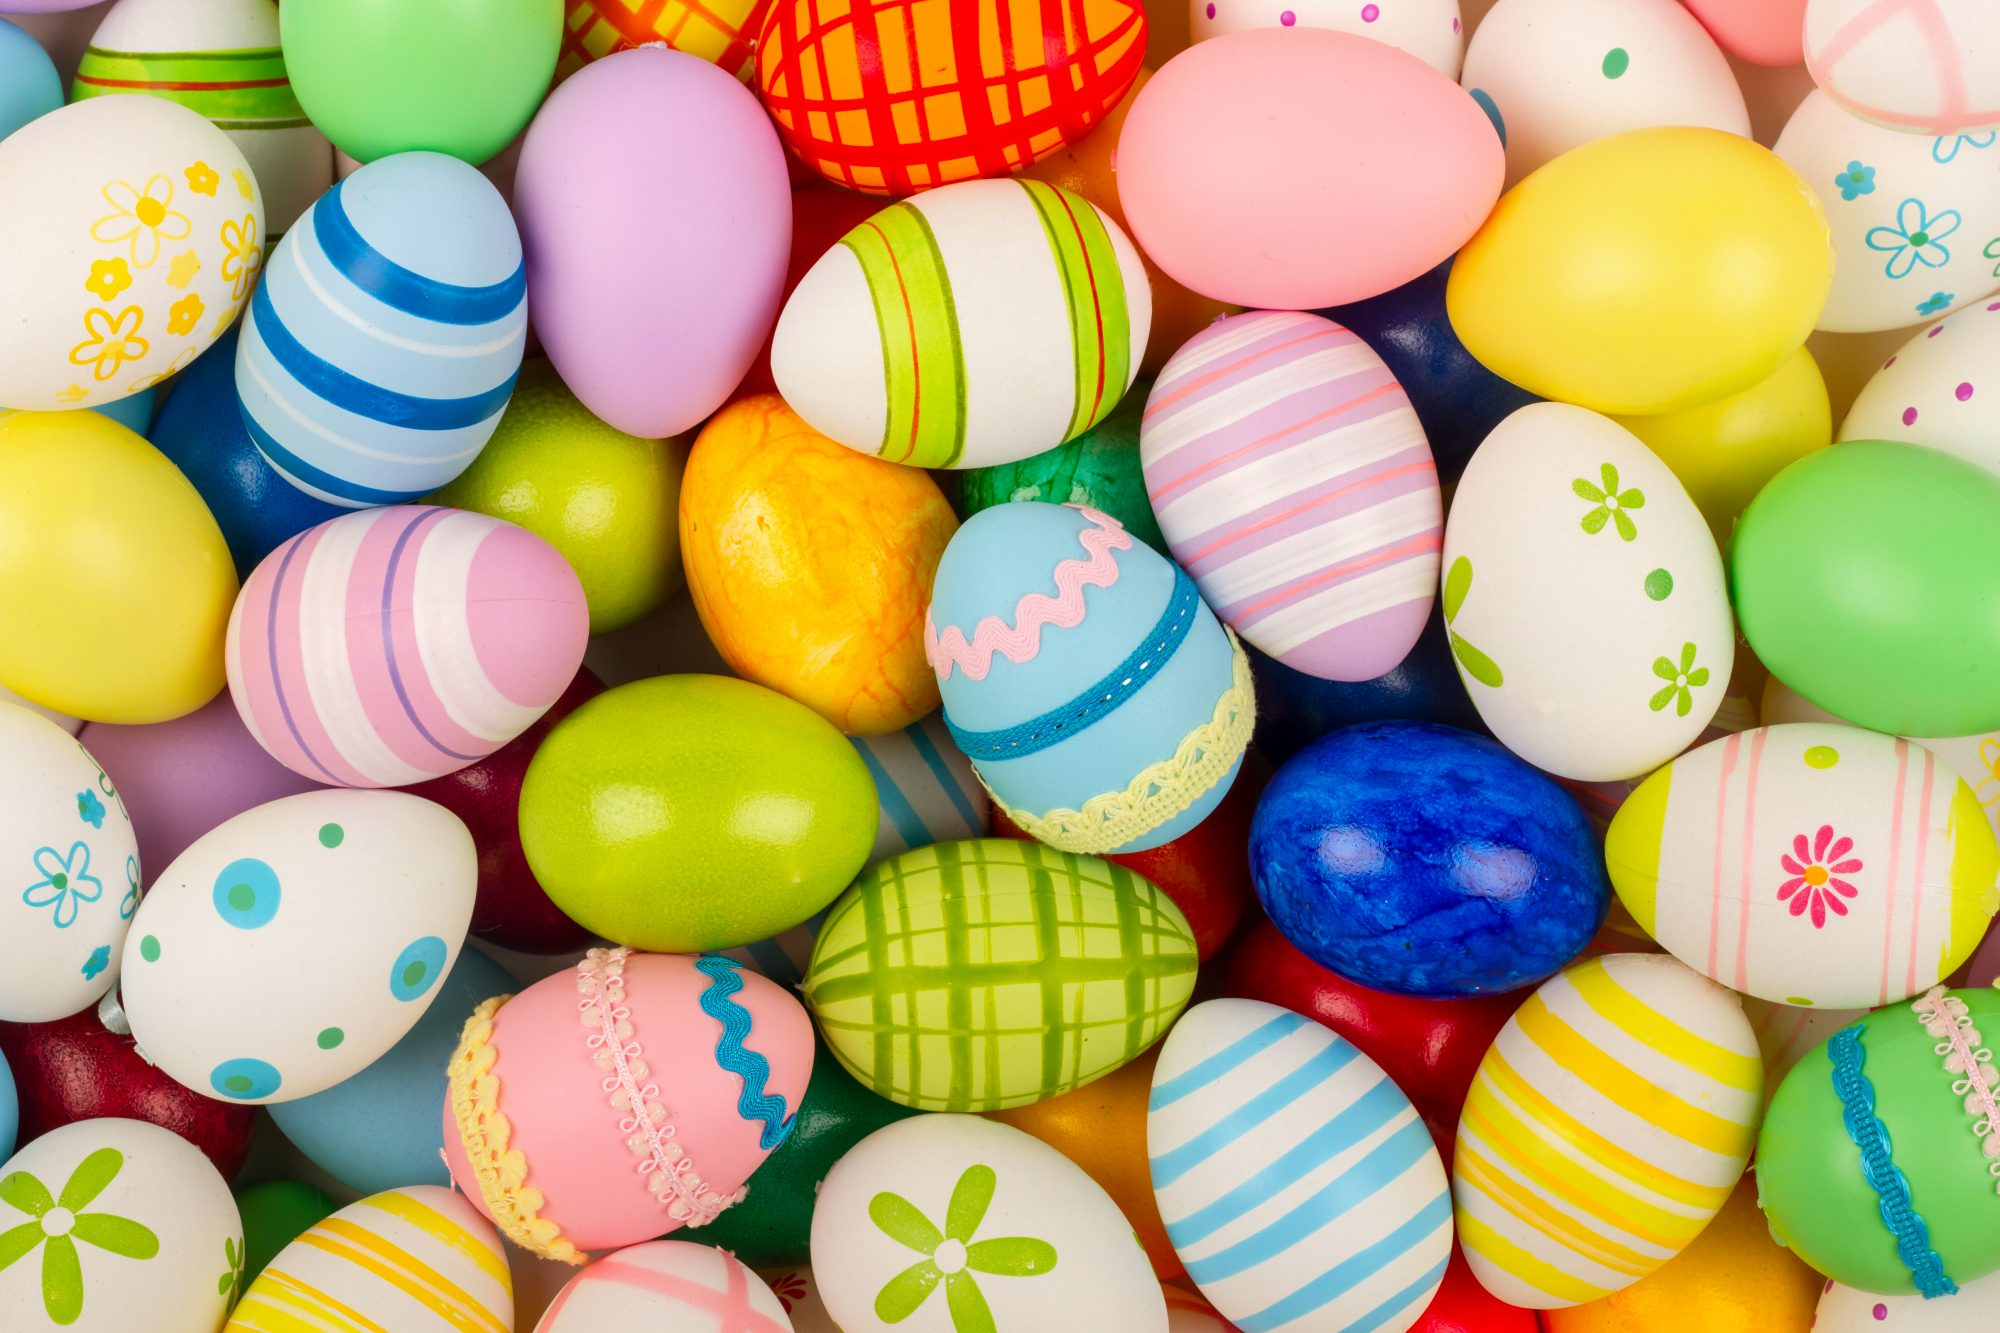 A colorful collection of patterned easter eggs